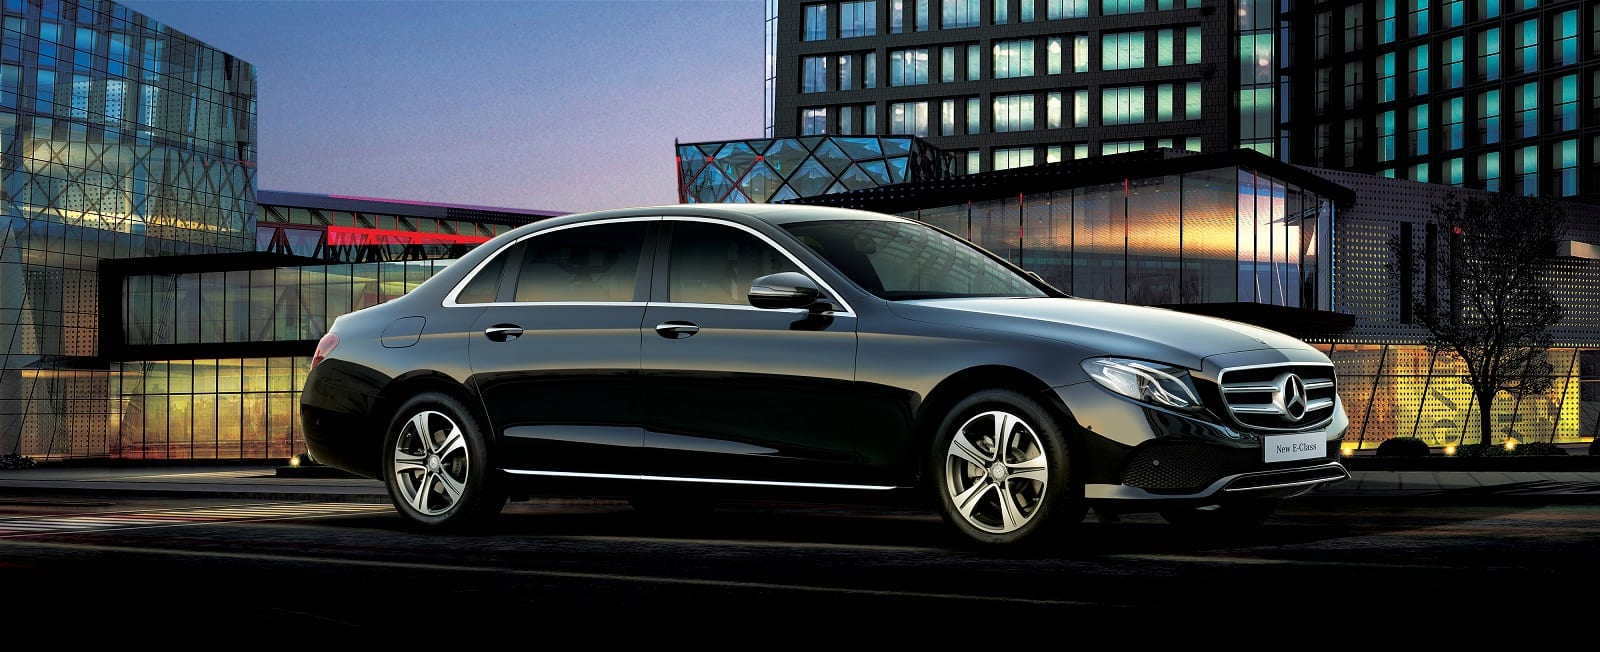 Mercedes Benz receives over 500 bookings for E-Class models